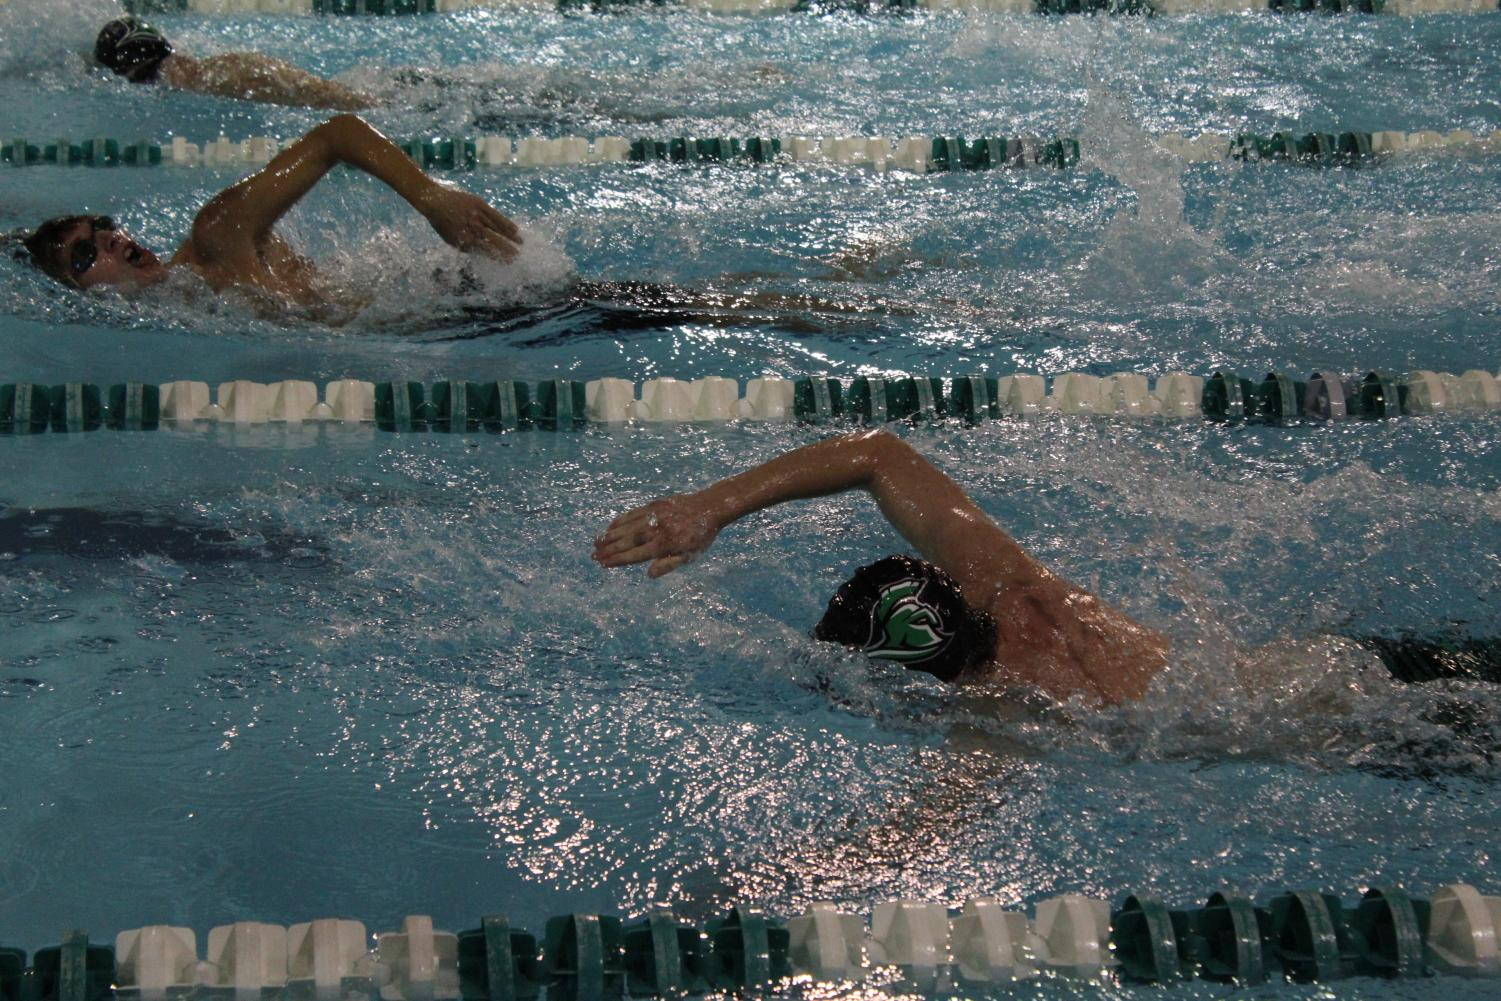 A Trojan swimmer working hard to place in their event.